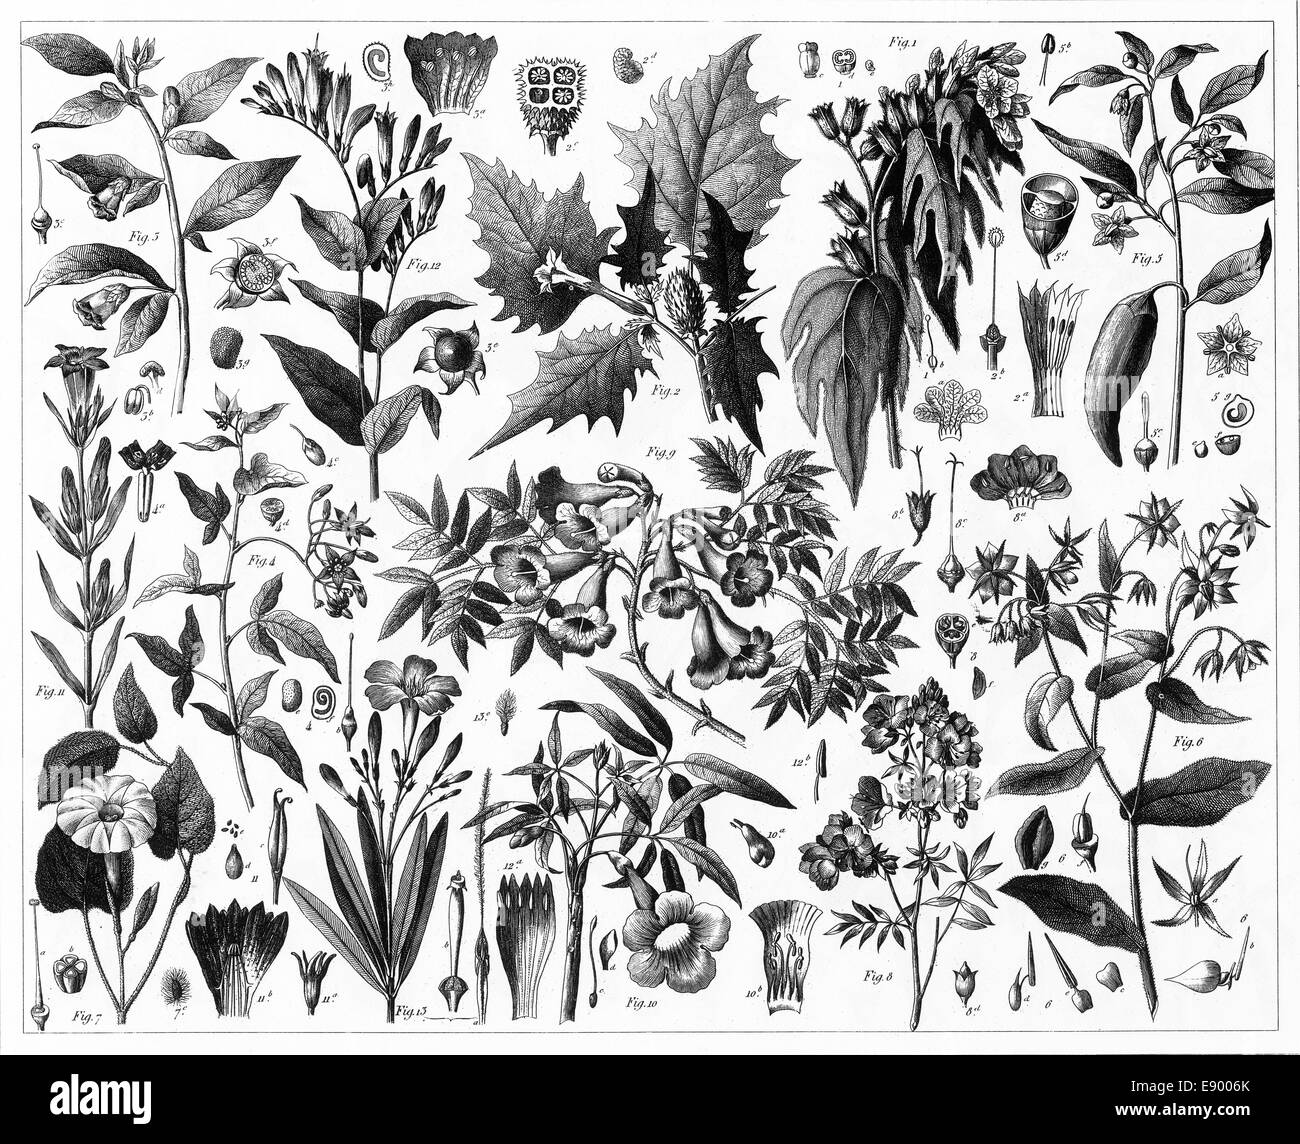 hight resolution of engraved illustrations of toxic plants from iconographic encyclopedia of science literature and art published in 1851